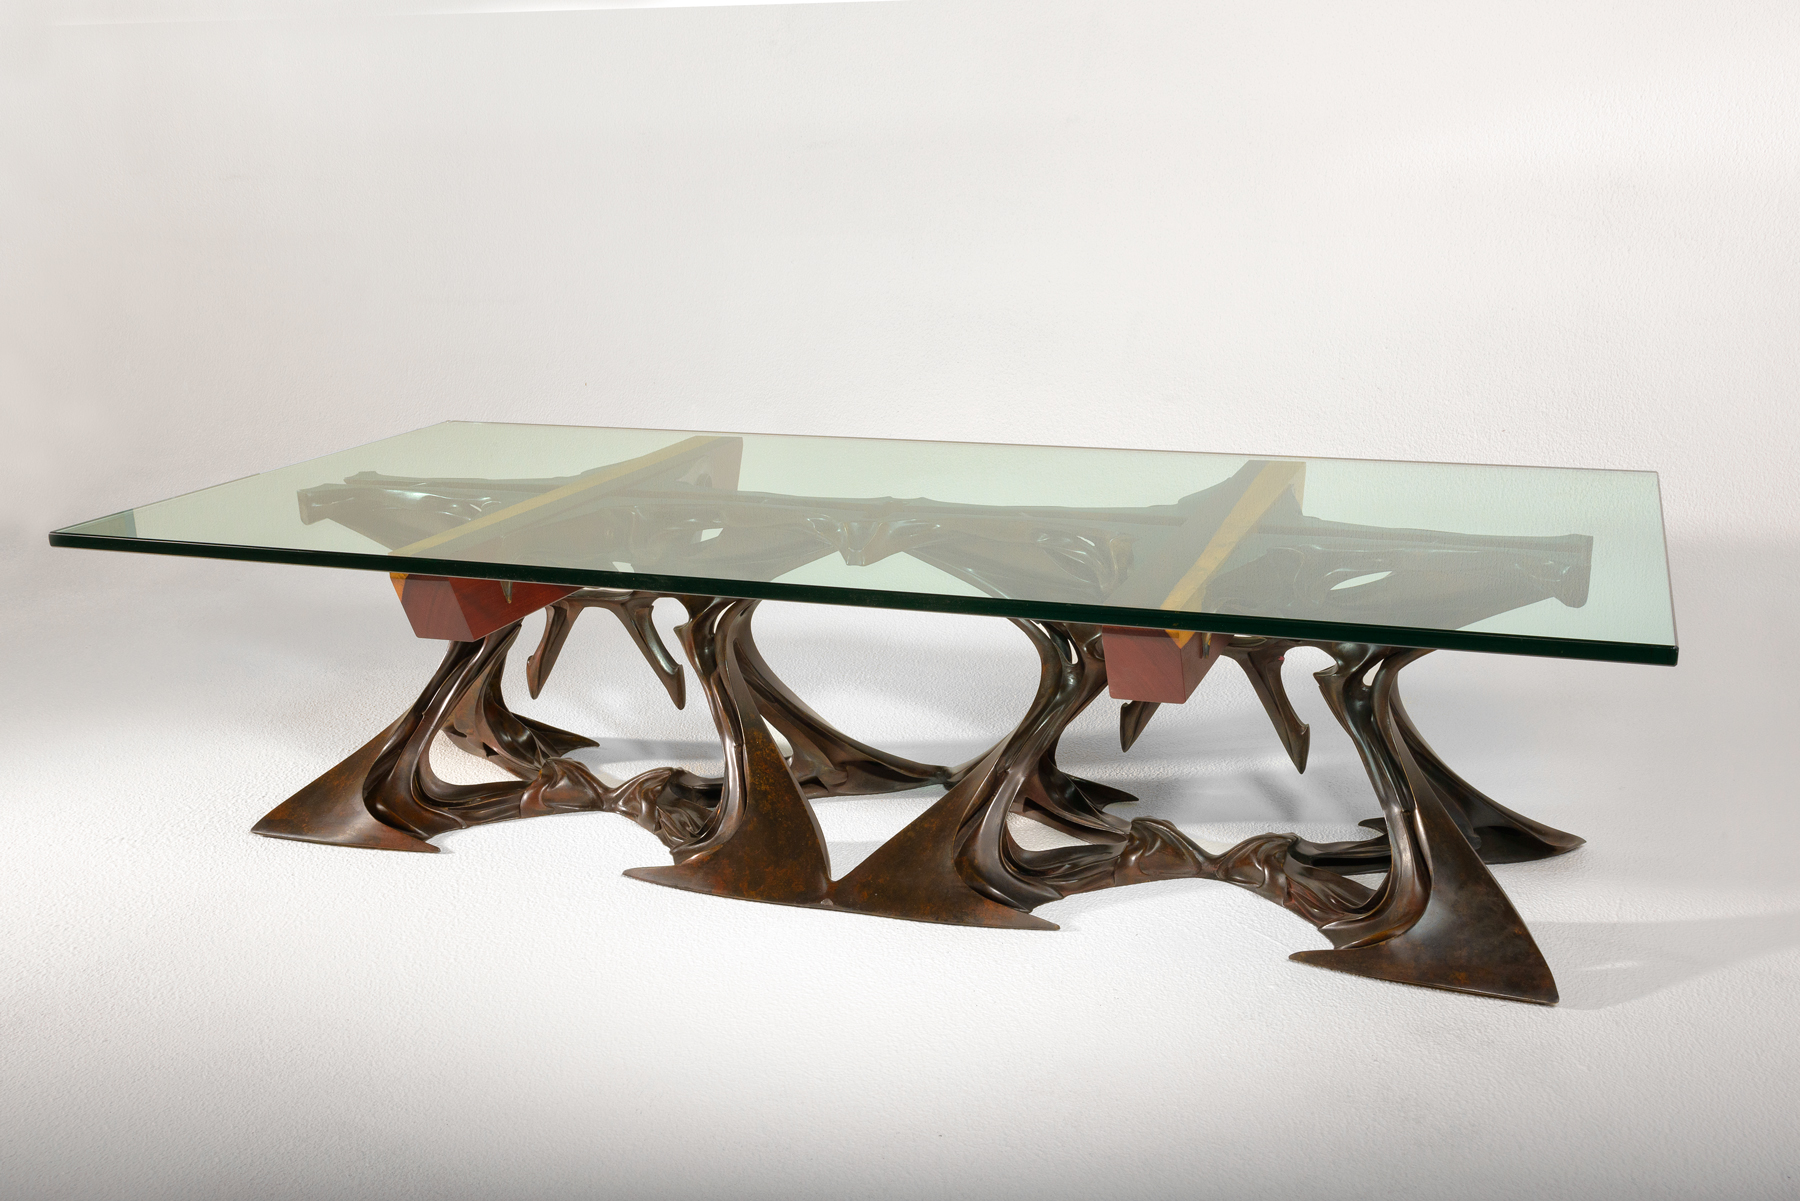 Just one of the many unique tables that will be on display.